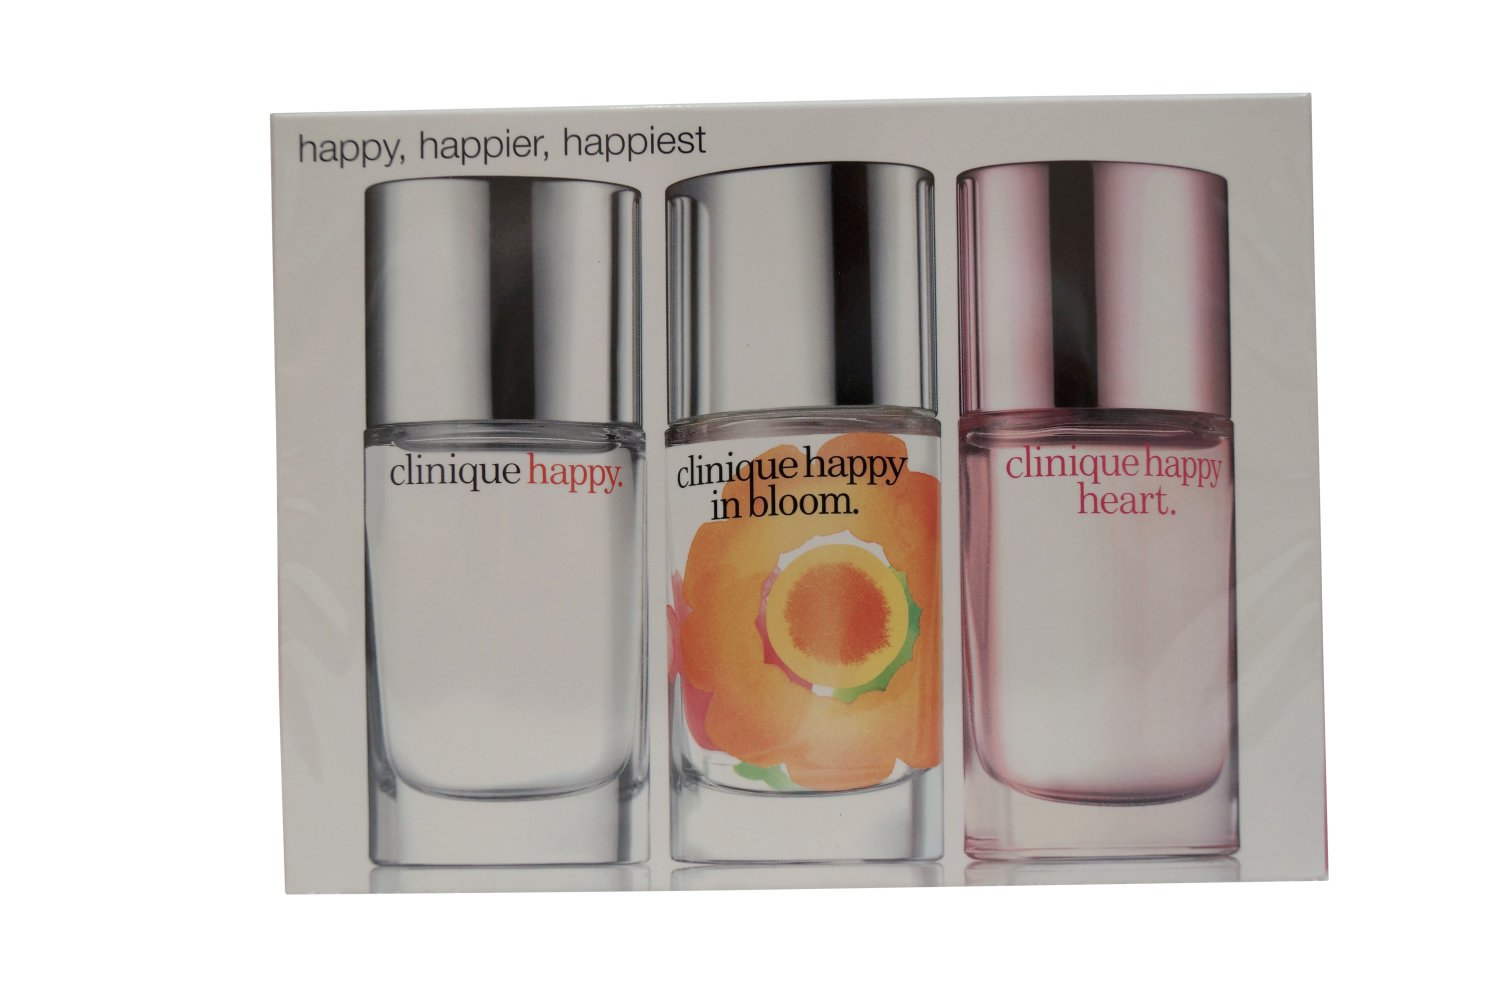 Clinique Happy Perfume Spray Trio Set, Happy,Happy in Bloom, Happy Heart